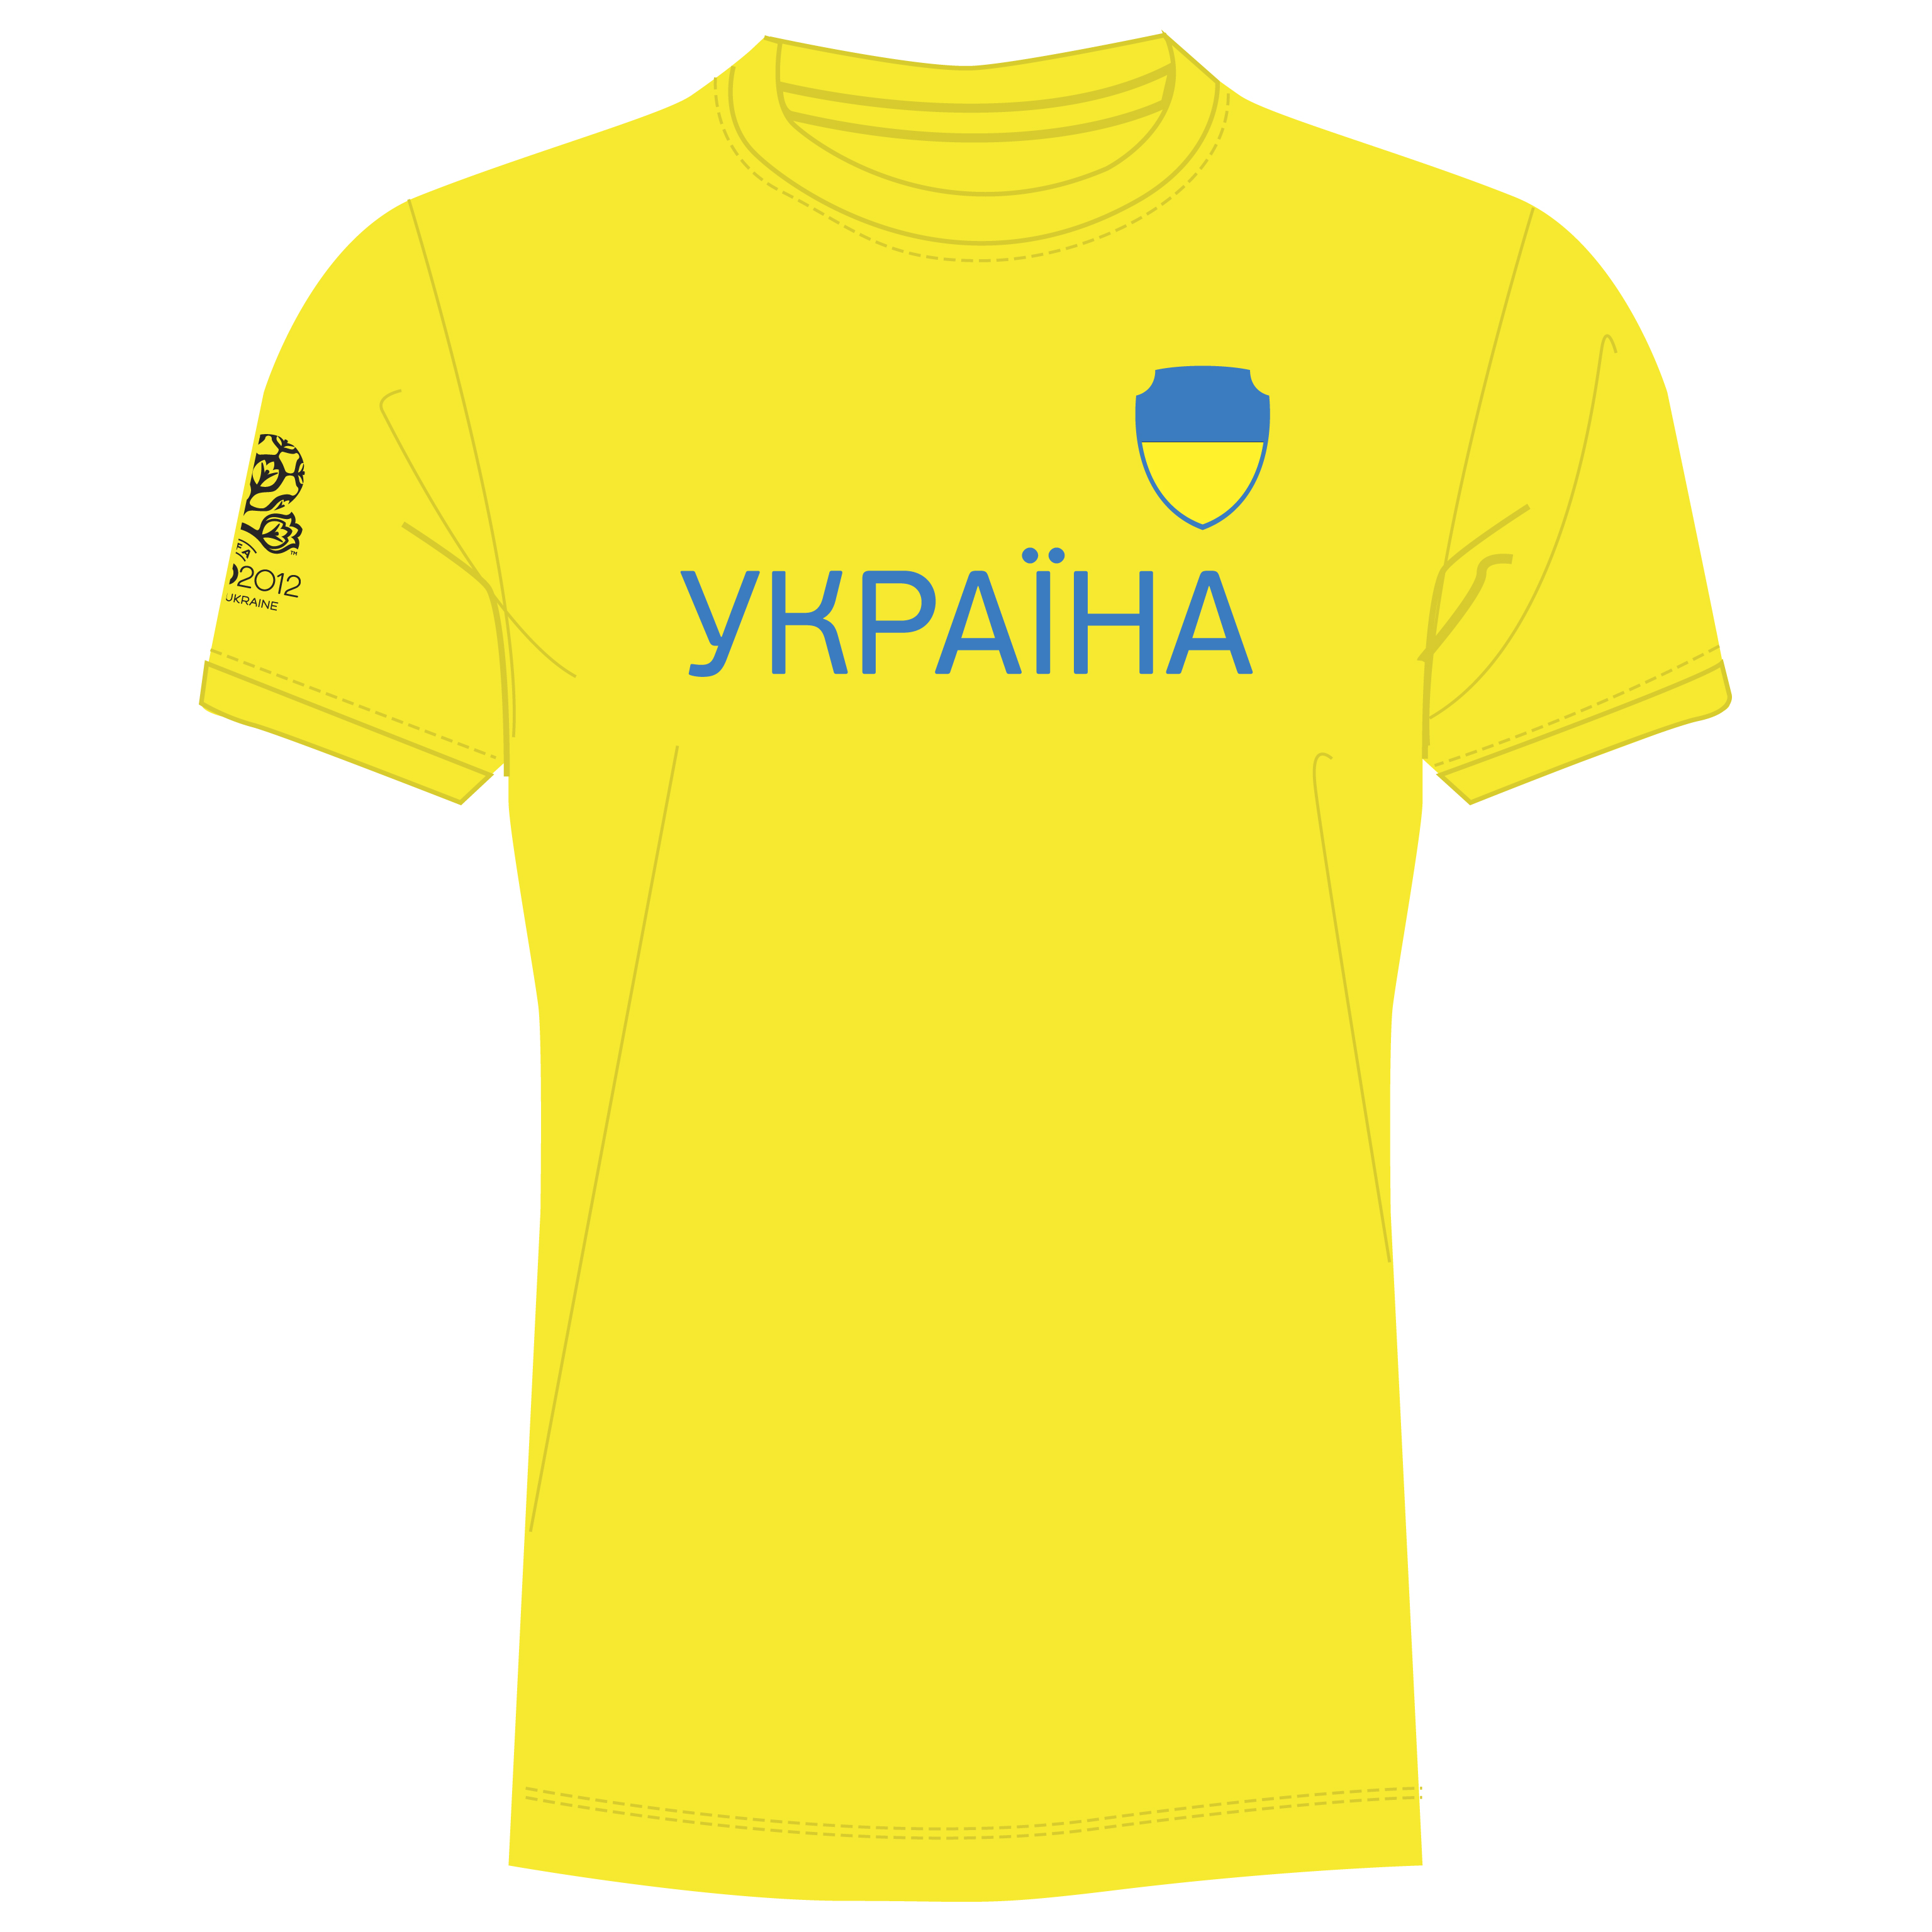 Euro 2012 Ukraine T-Shirt - Yellow/Blue